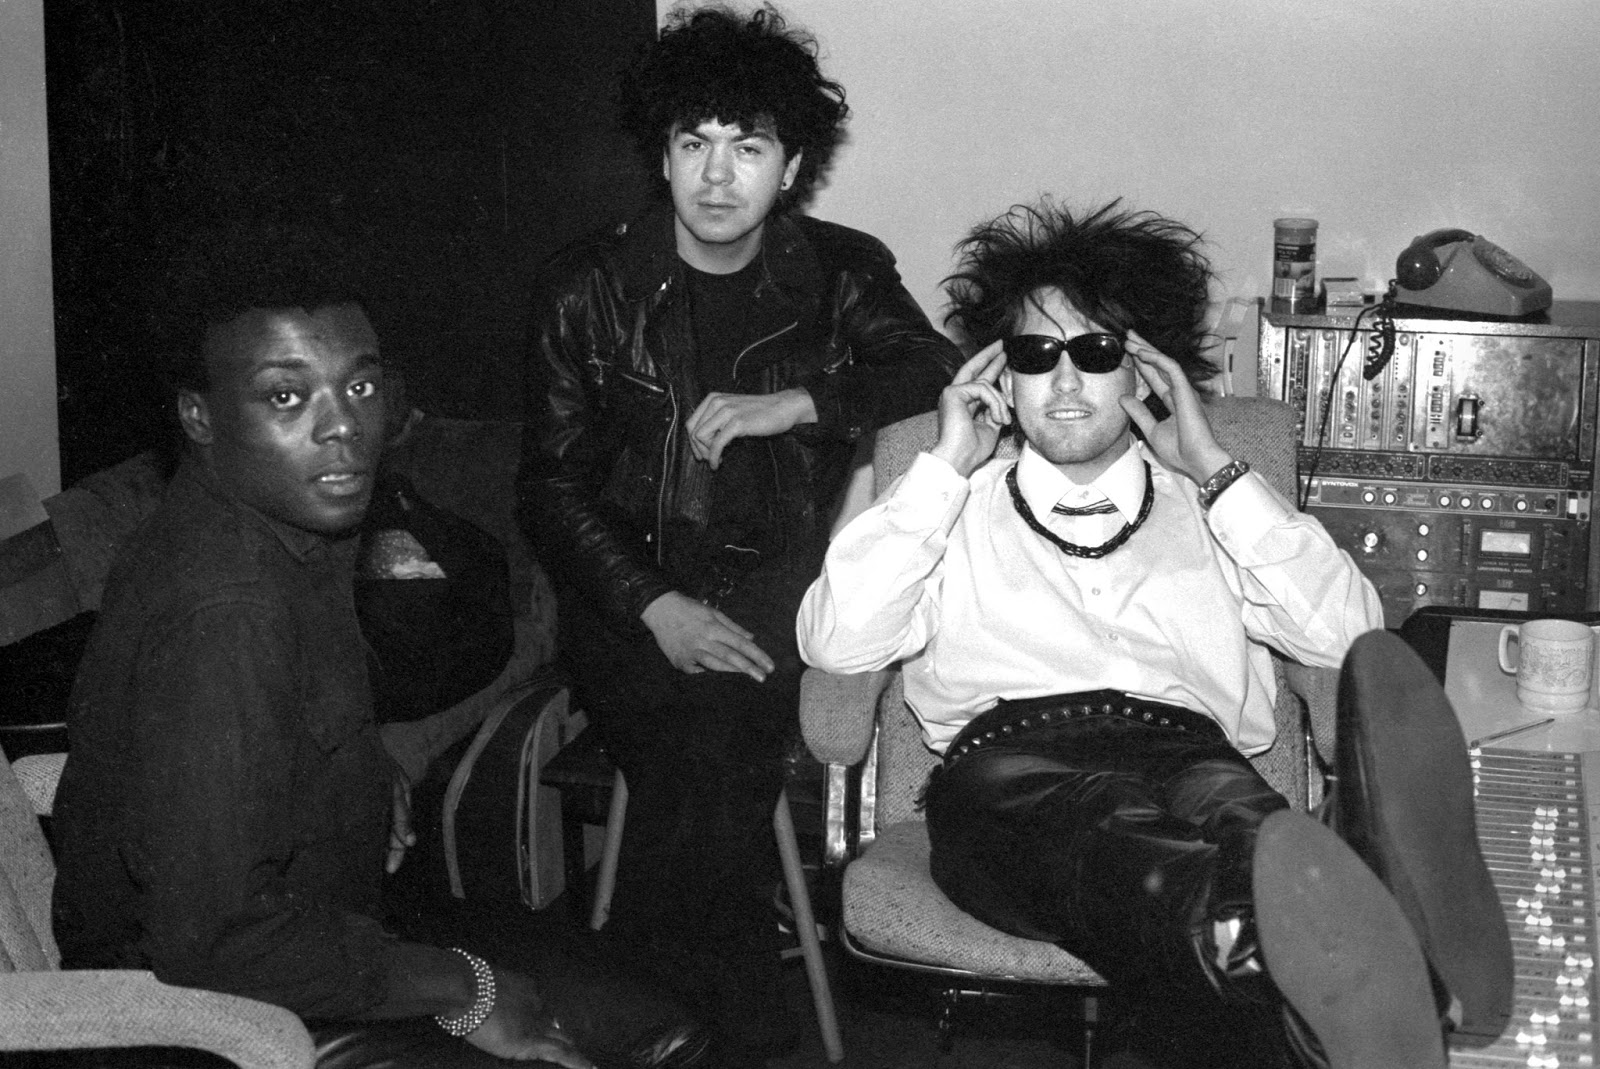 22_the-cure-dec-1983-recording-the-top-2.jpg